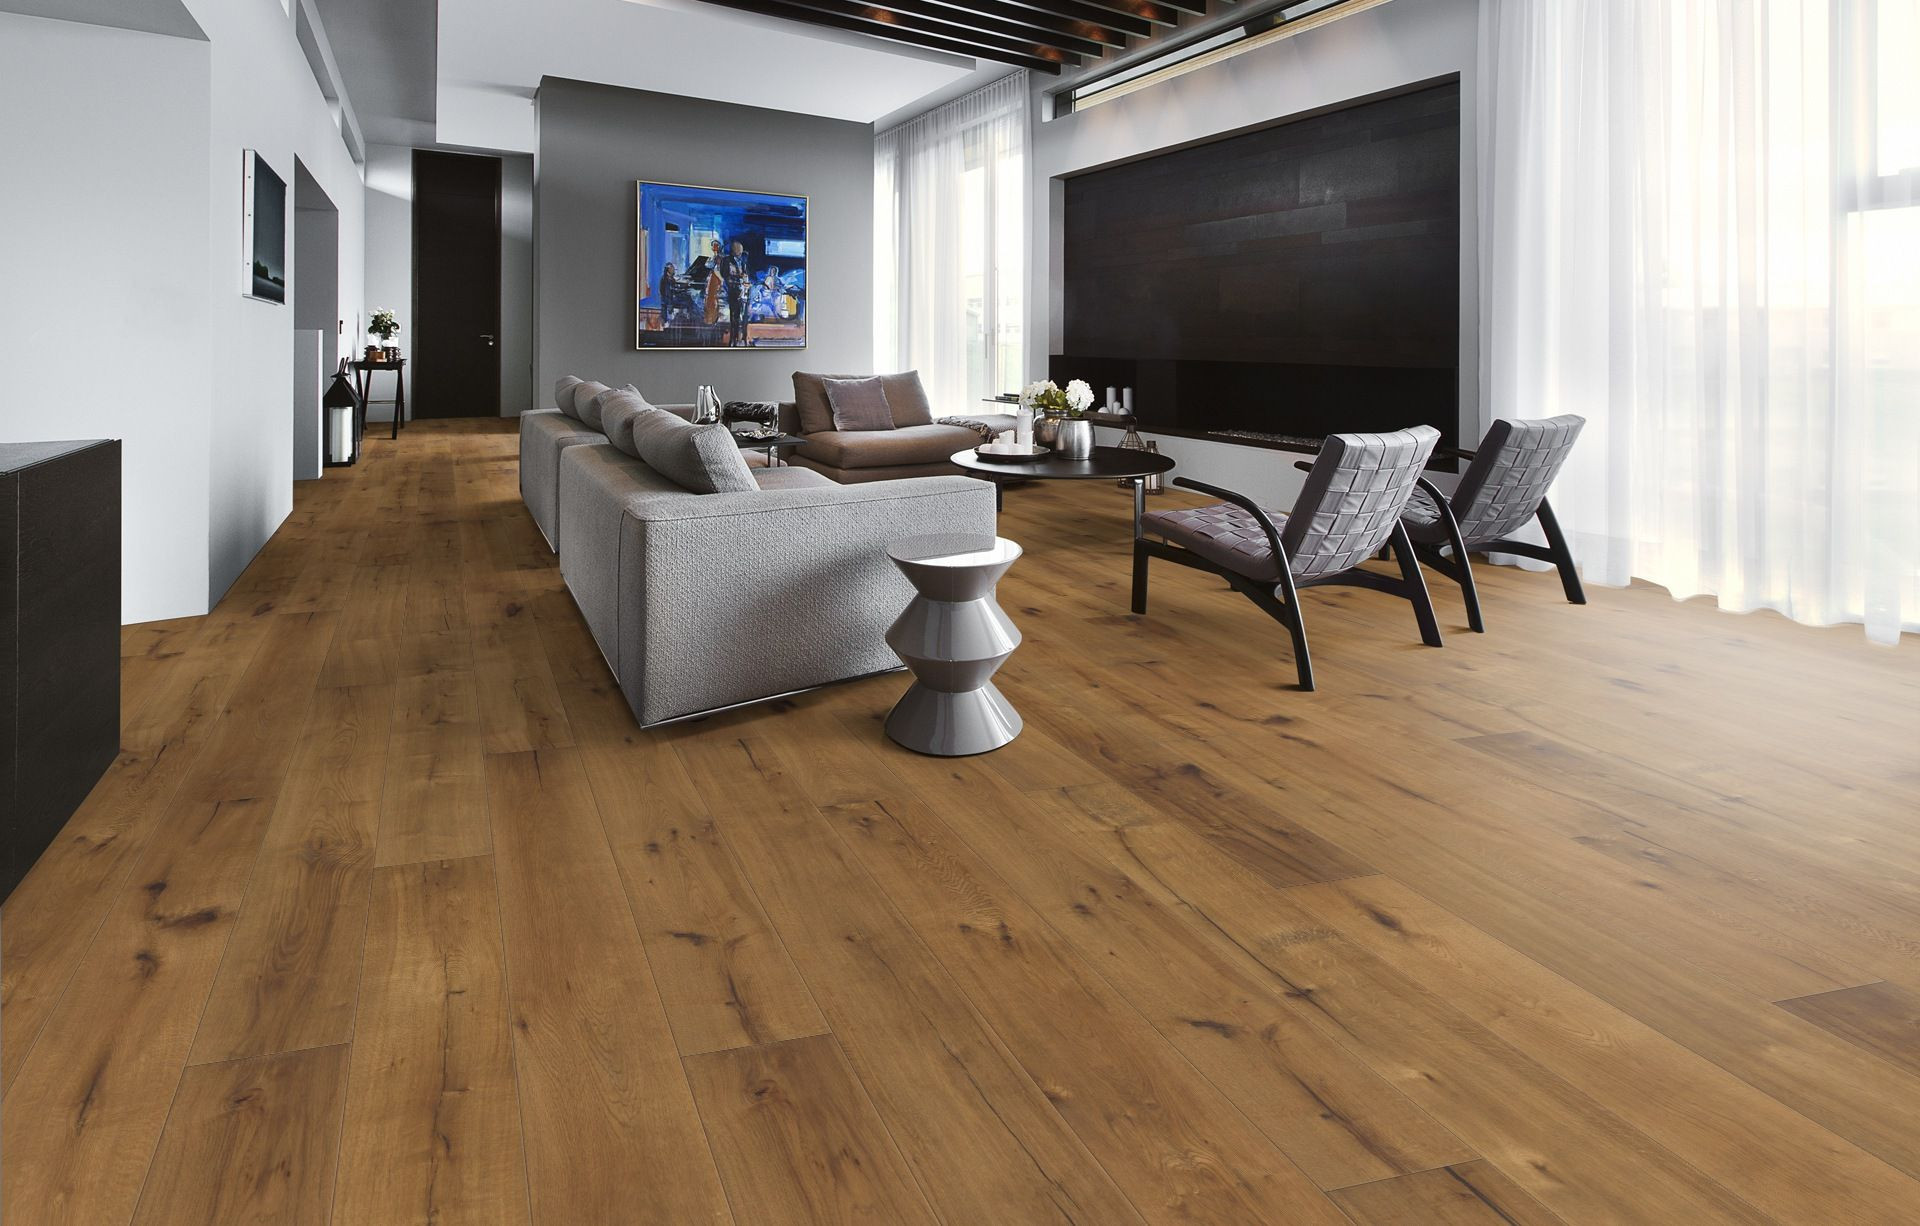 kahrs engineered hardwood flooring reviews of kahrs flooring pin by nina on wohnen boden len holz floor plan ideas in kahrs flooring pin by nina on wohnen boden len holz